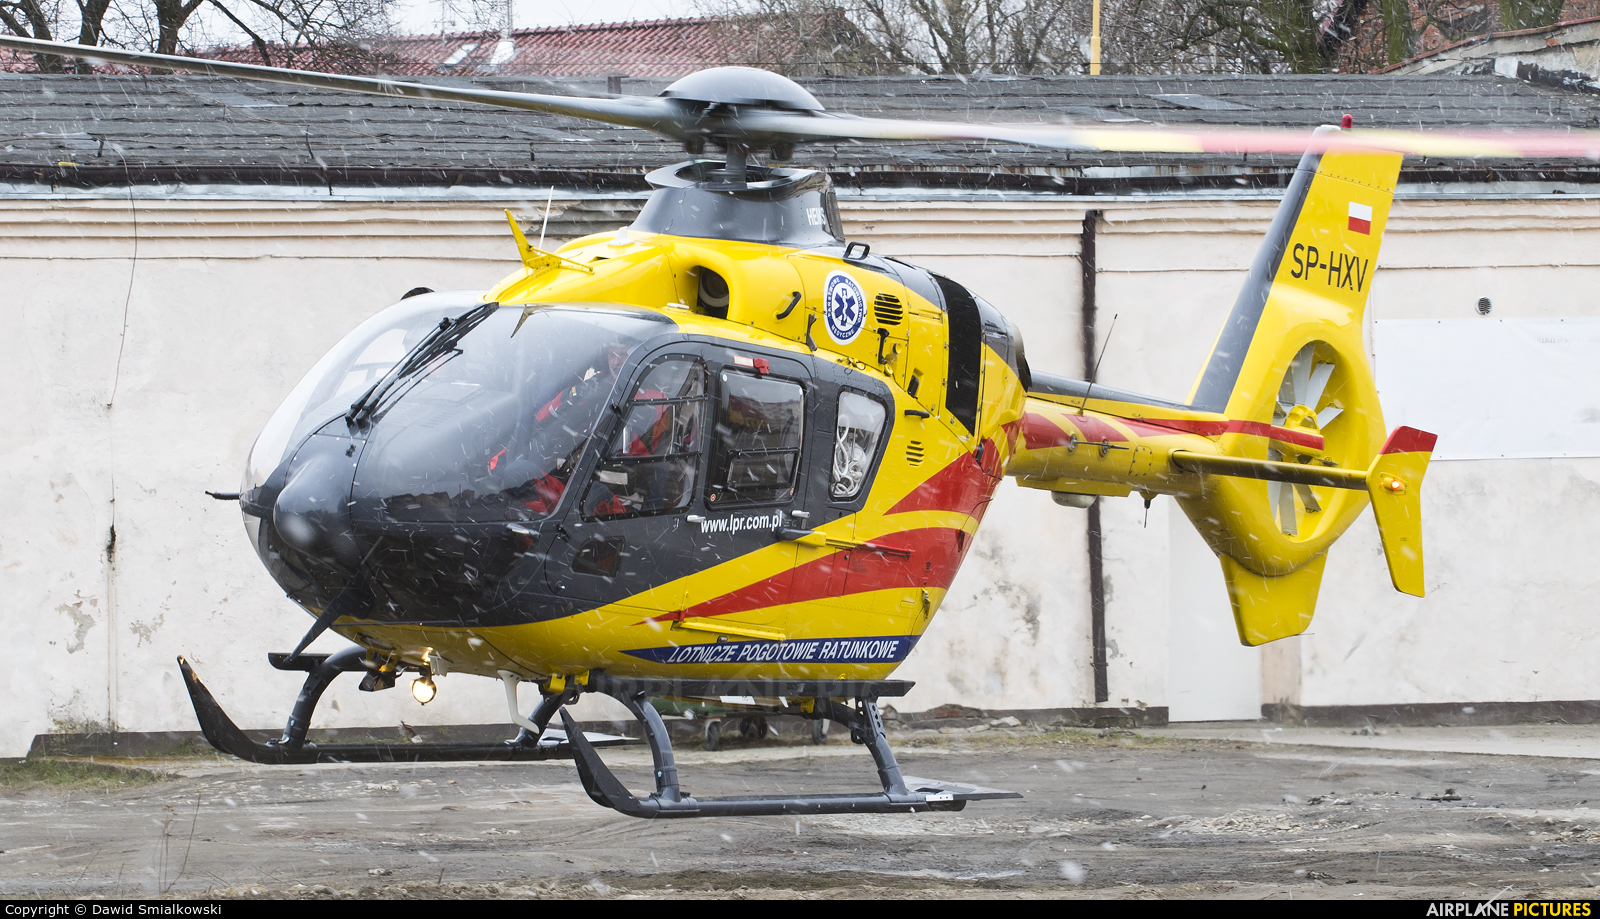 Polish Medical Air Rescue - Lotnicze Pogotowie Ratunkowe SP-HXV aircraft at Undisclosed location